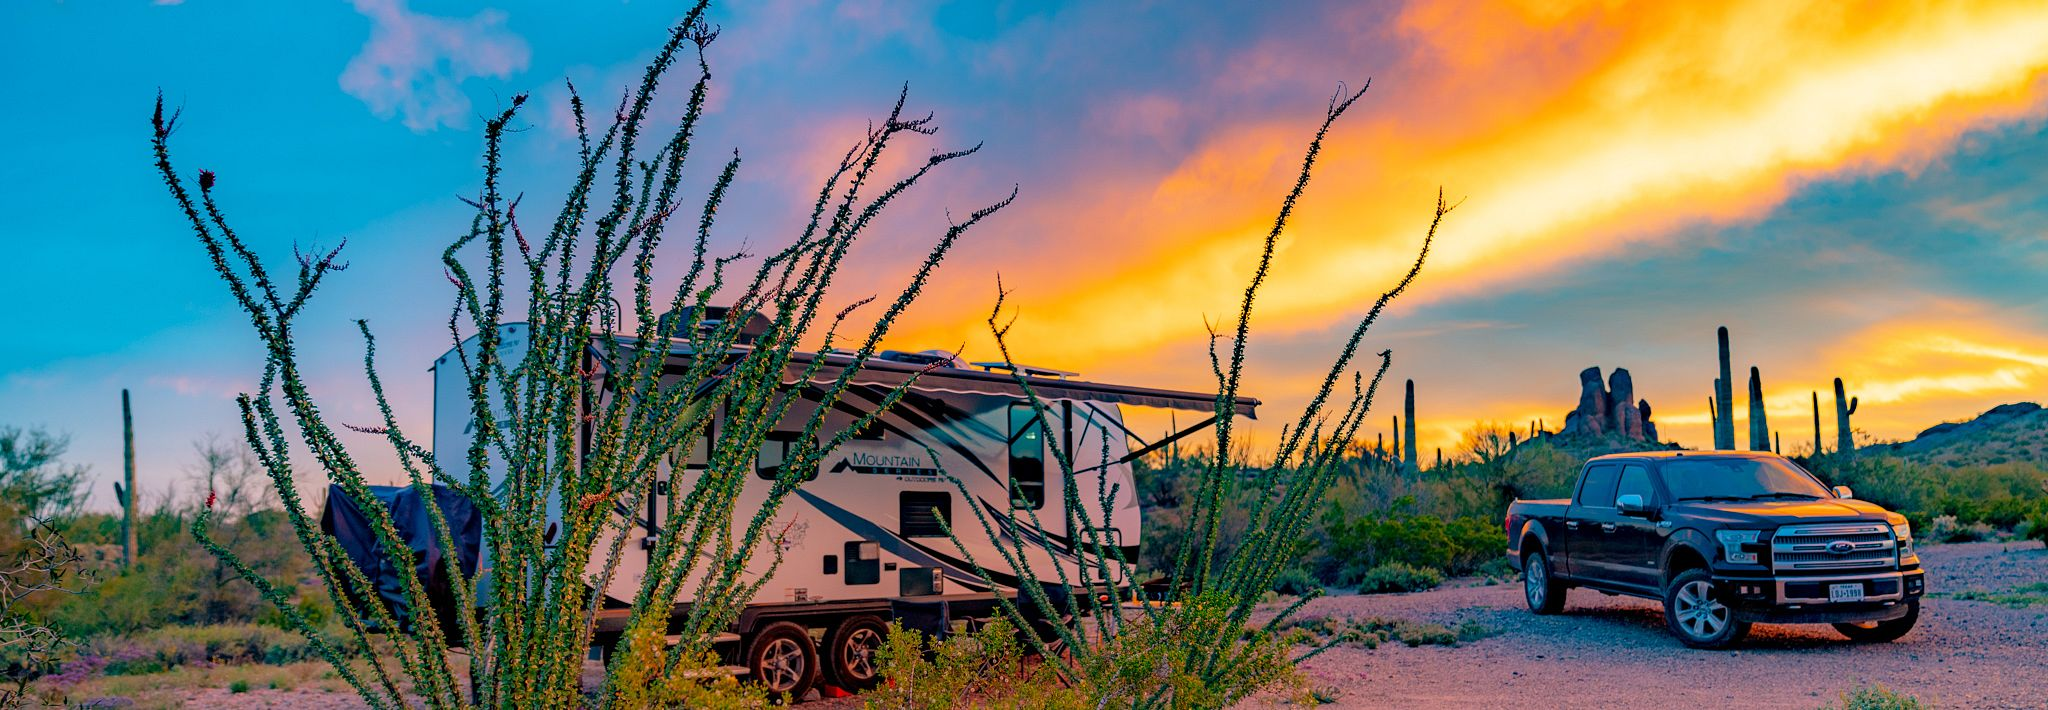 Outdoors RV Photo Contest Grand Prize Winner